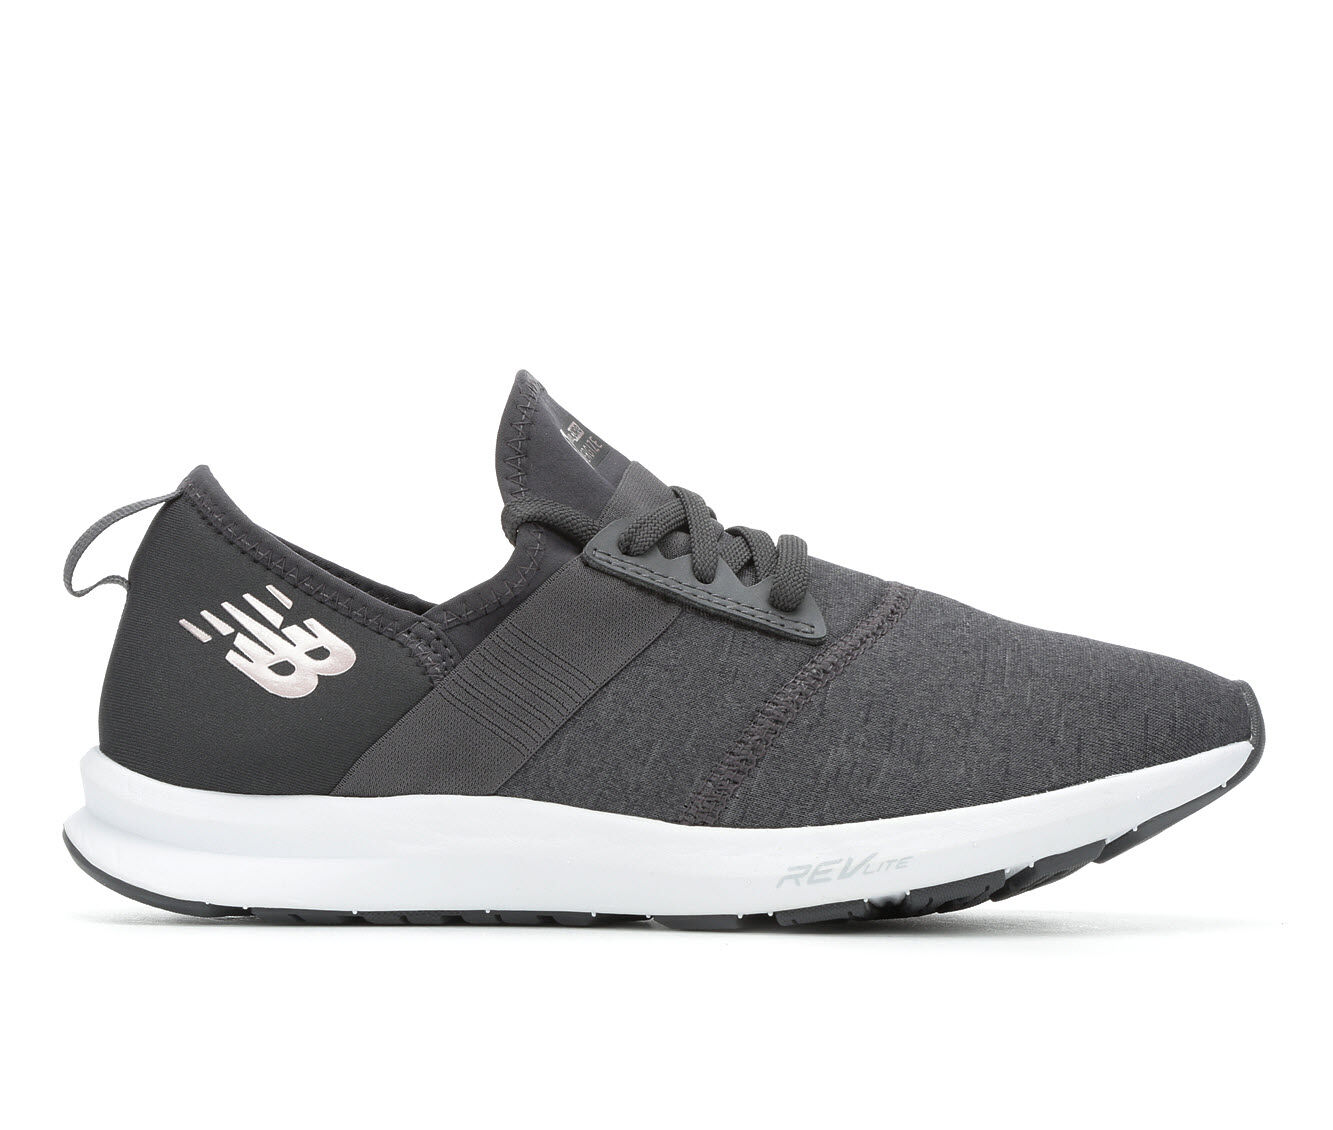 Women's New Balance FuelCore Nergize Sneakers Grey/Rose Gold